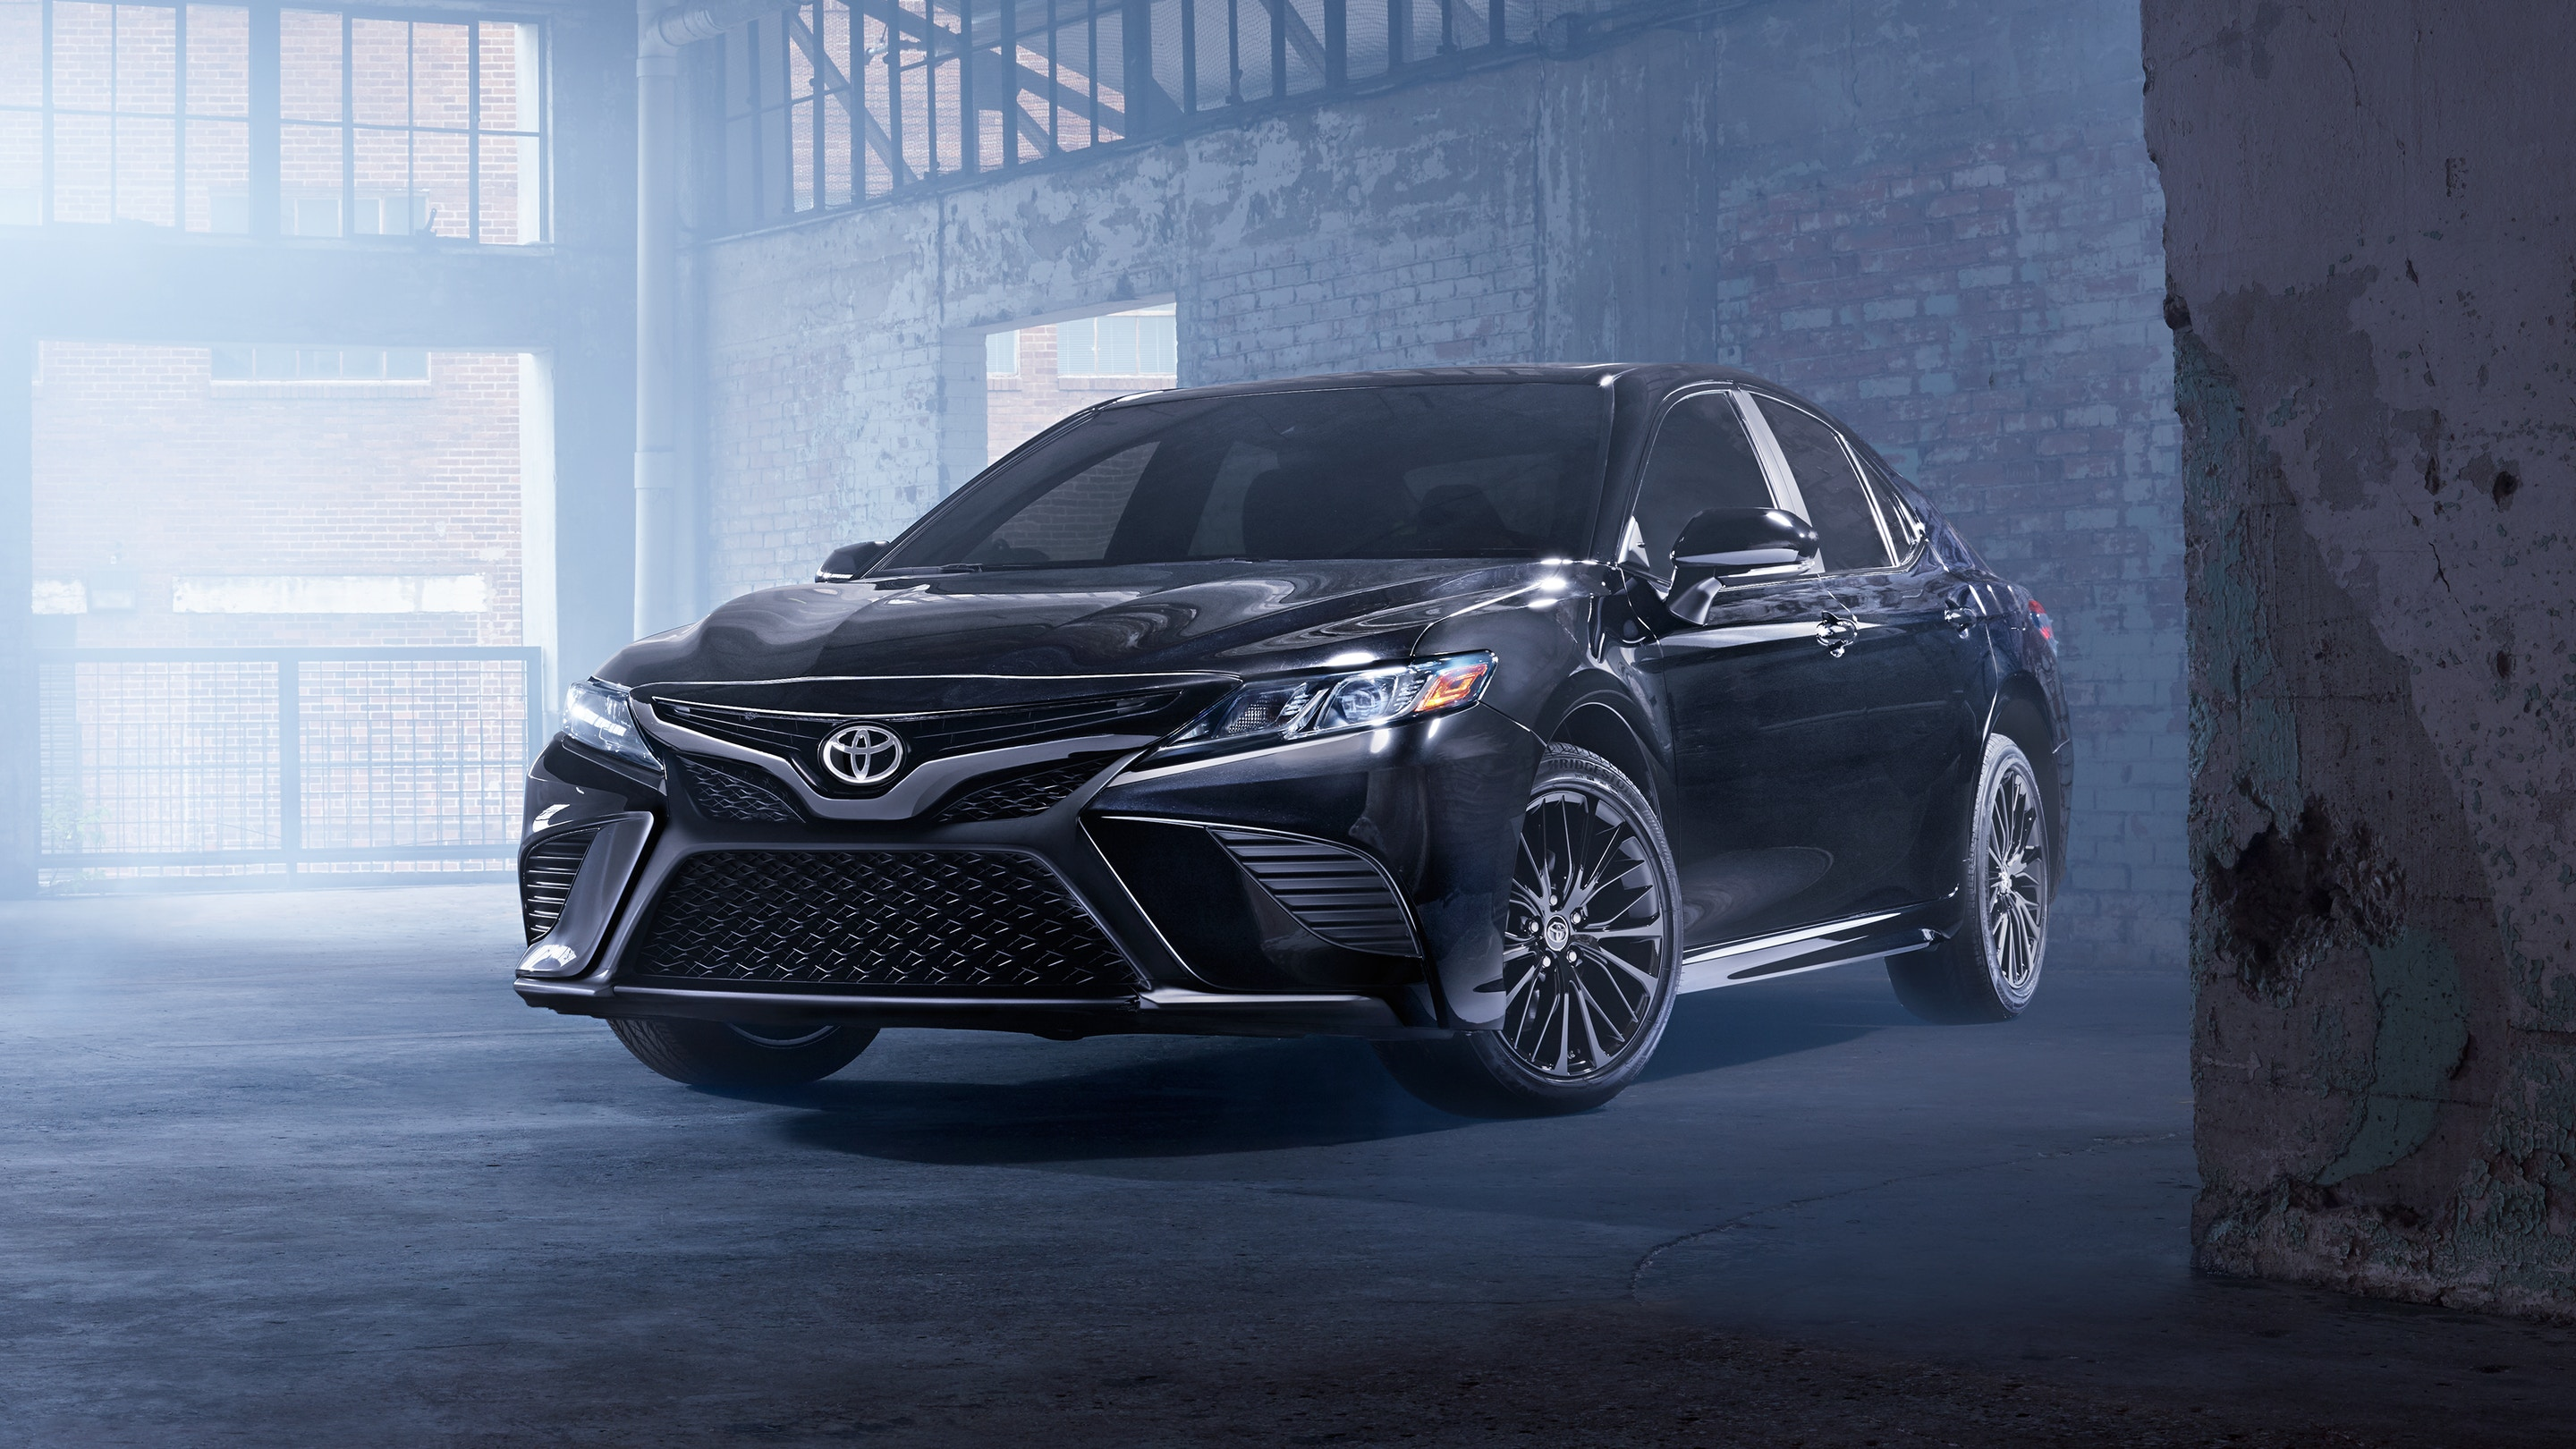 2019 Toyota Camry for Sale near Chicago, IL